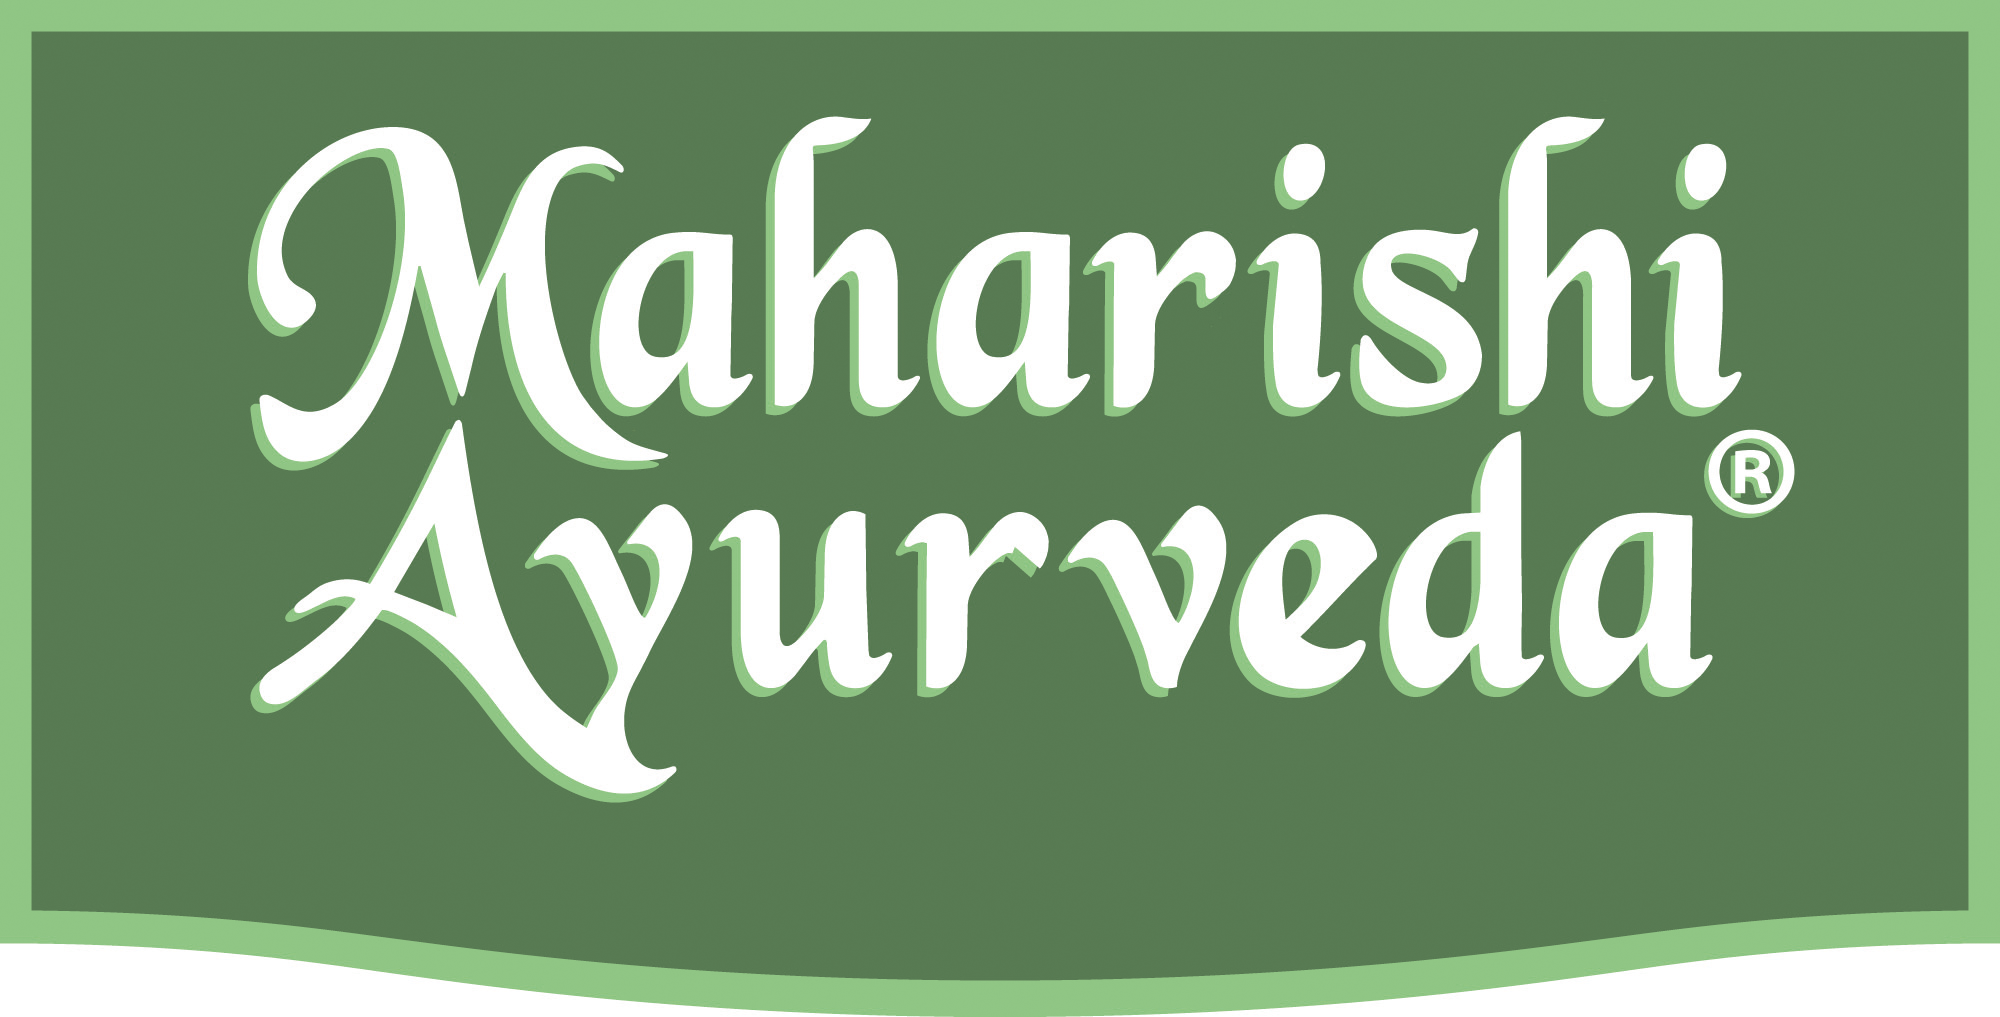 Maharishi Ayurveda Products Europe